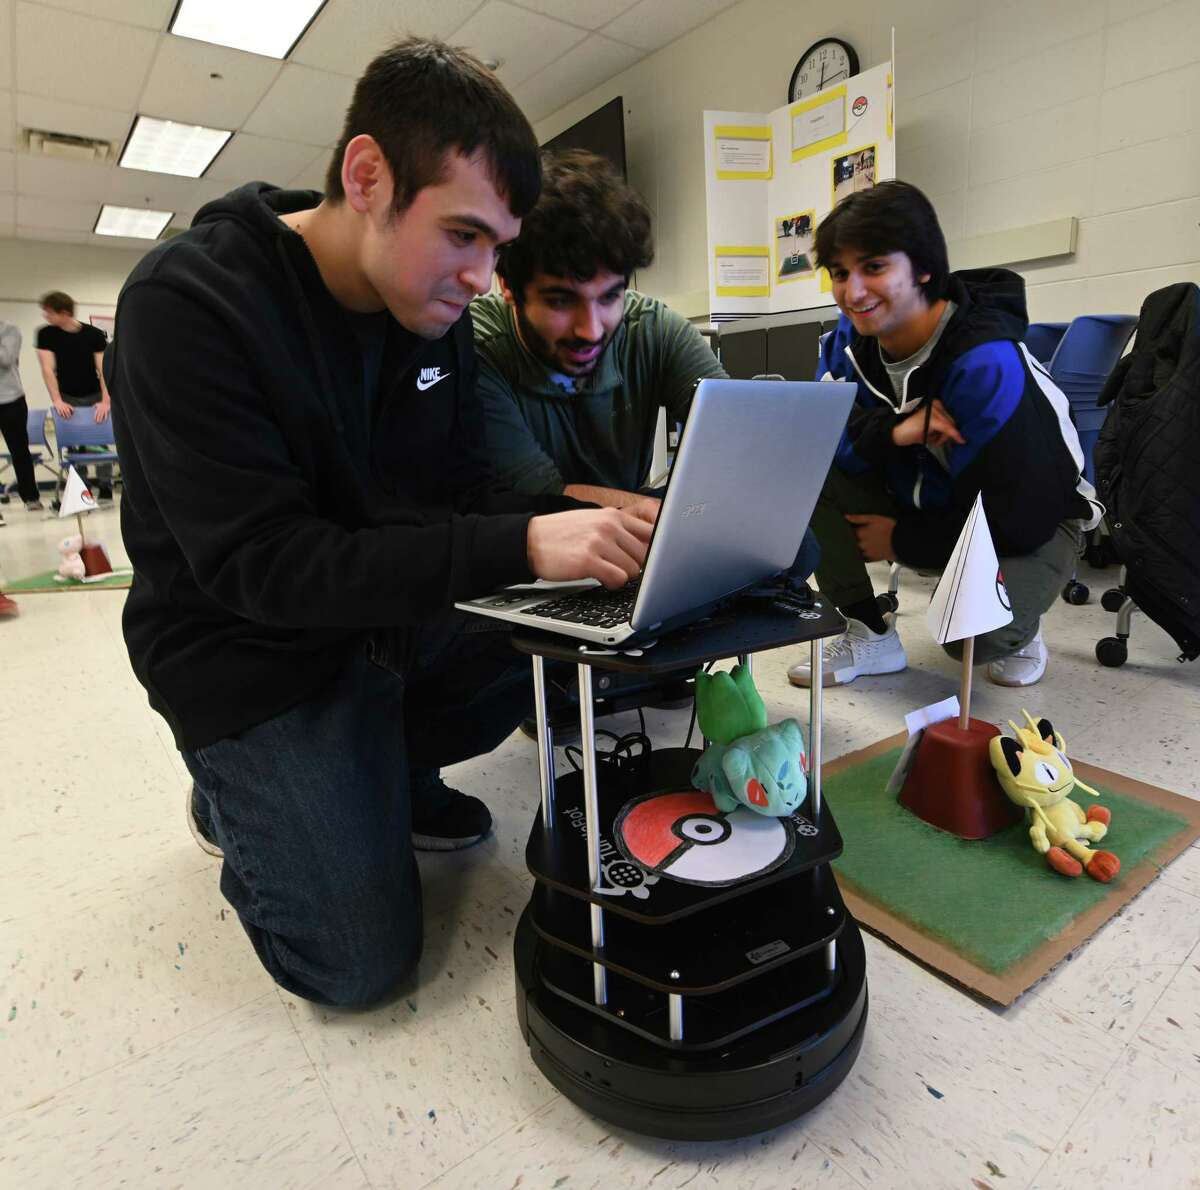 Javier Rodriguez, left, Robert Morvillo, center, and Daniel Van Dyk fine tune their robot Pokebot during the Robo Show held at Siena College Friday Dec. 7, 2018 in Loudonville, N.Y. The group built the robot to mimic a warehouse security bot for their school project in robotics. (Skip Dickstein/Times Union)